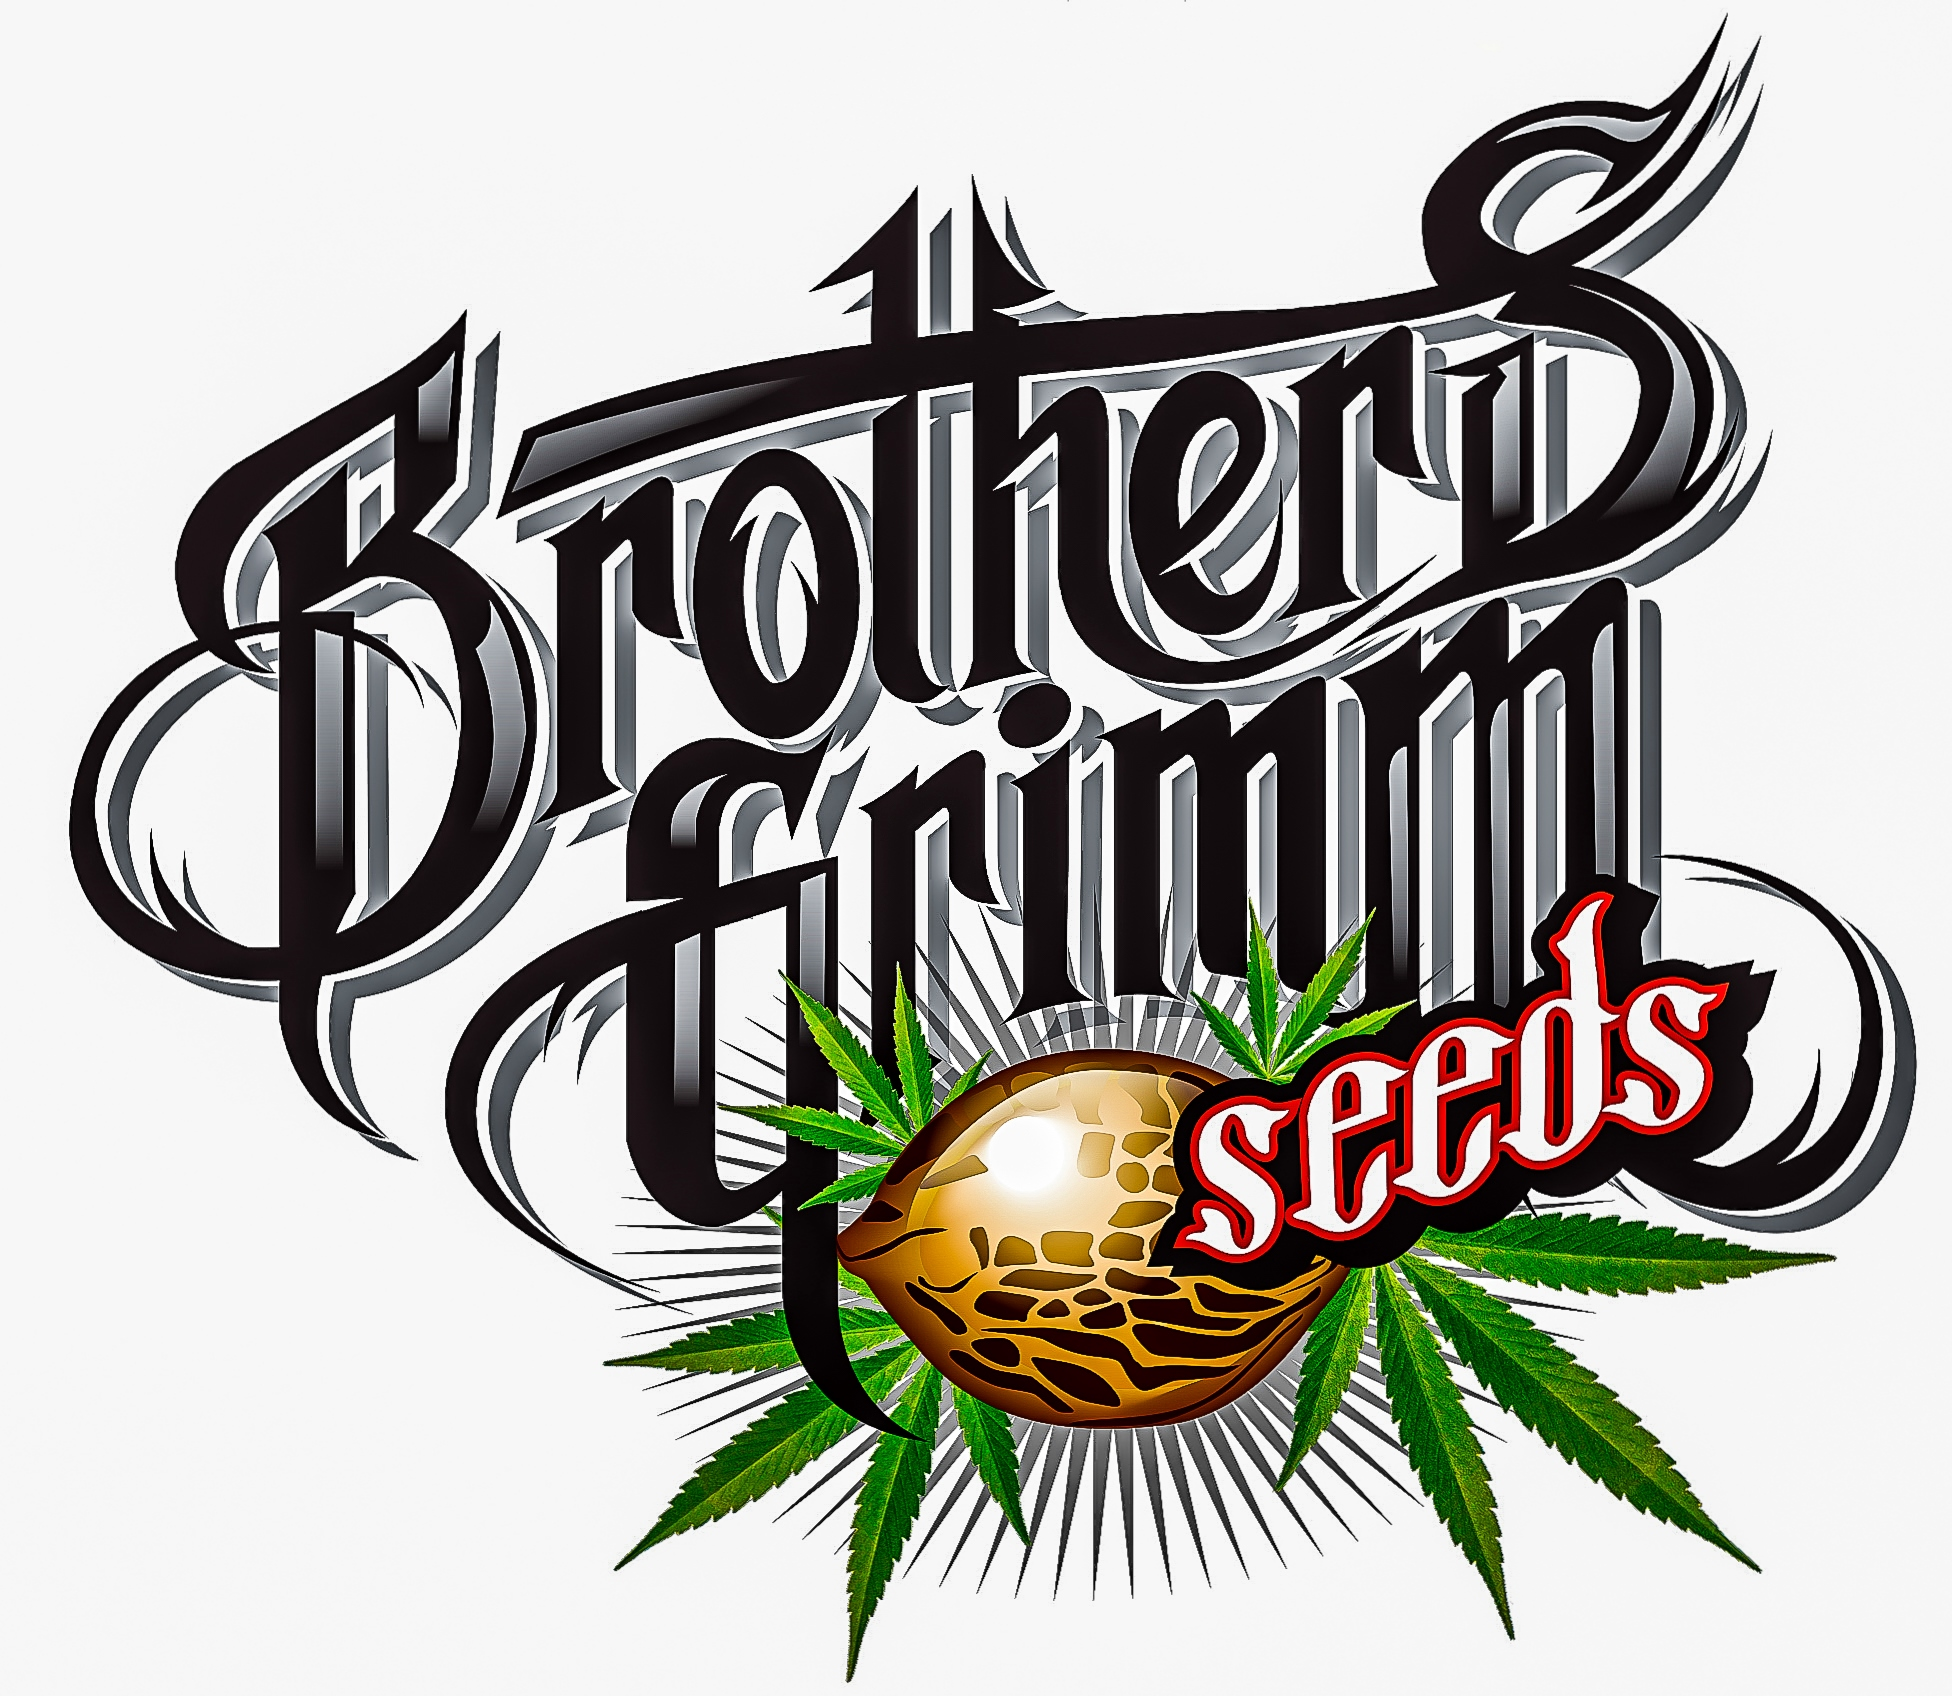 Brothers Grimm logo